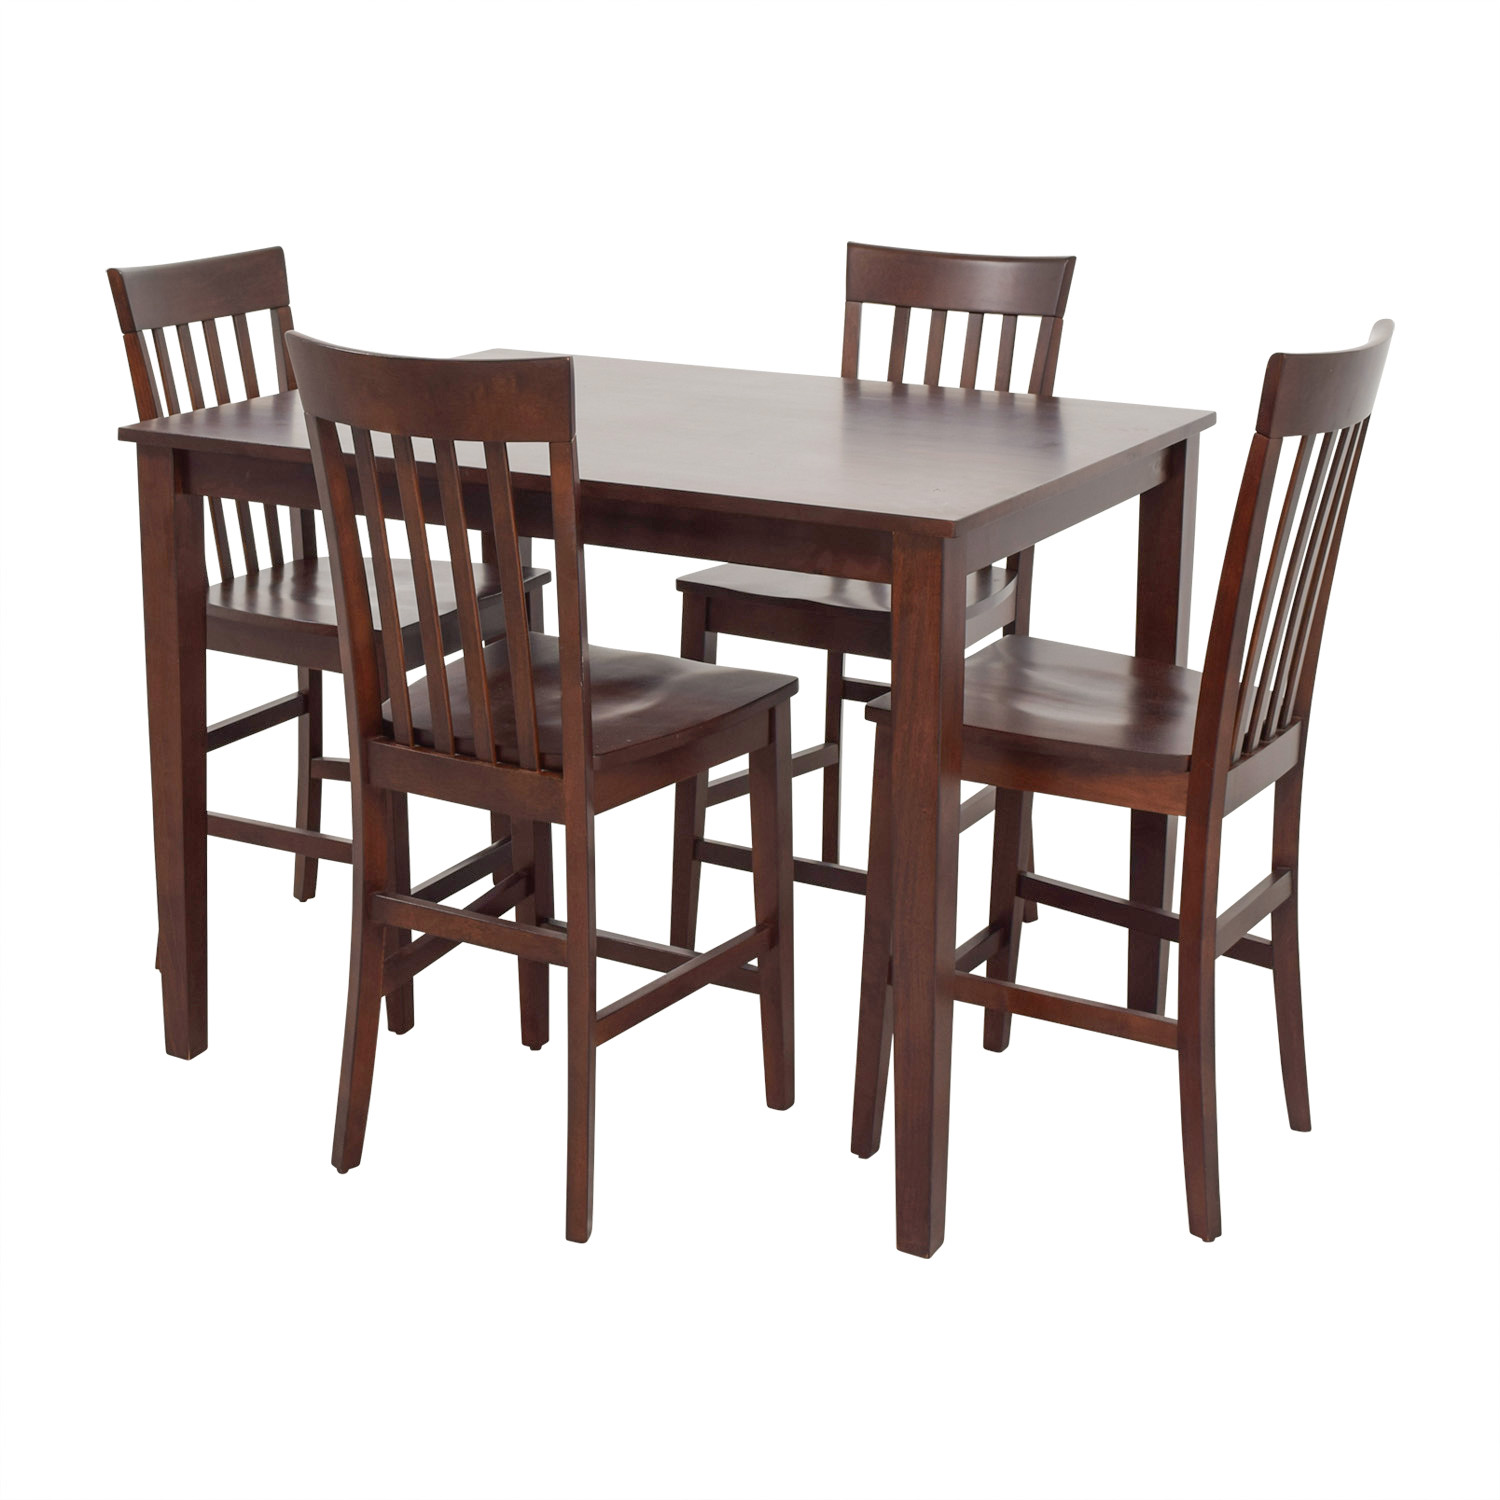 Raymour & Flanigan Bellanest Counter Height Dining Set Raymour and Flanigan